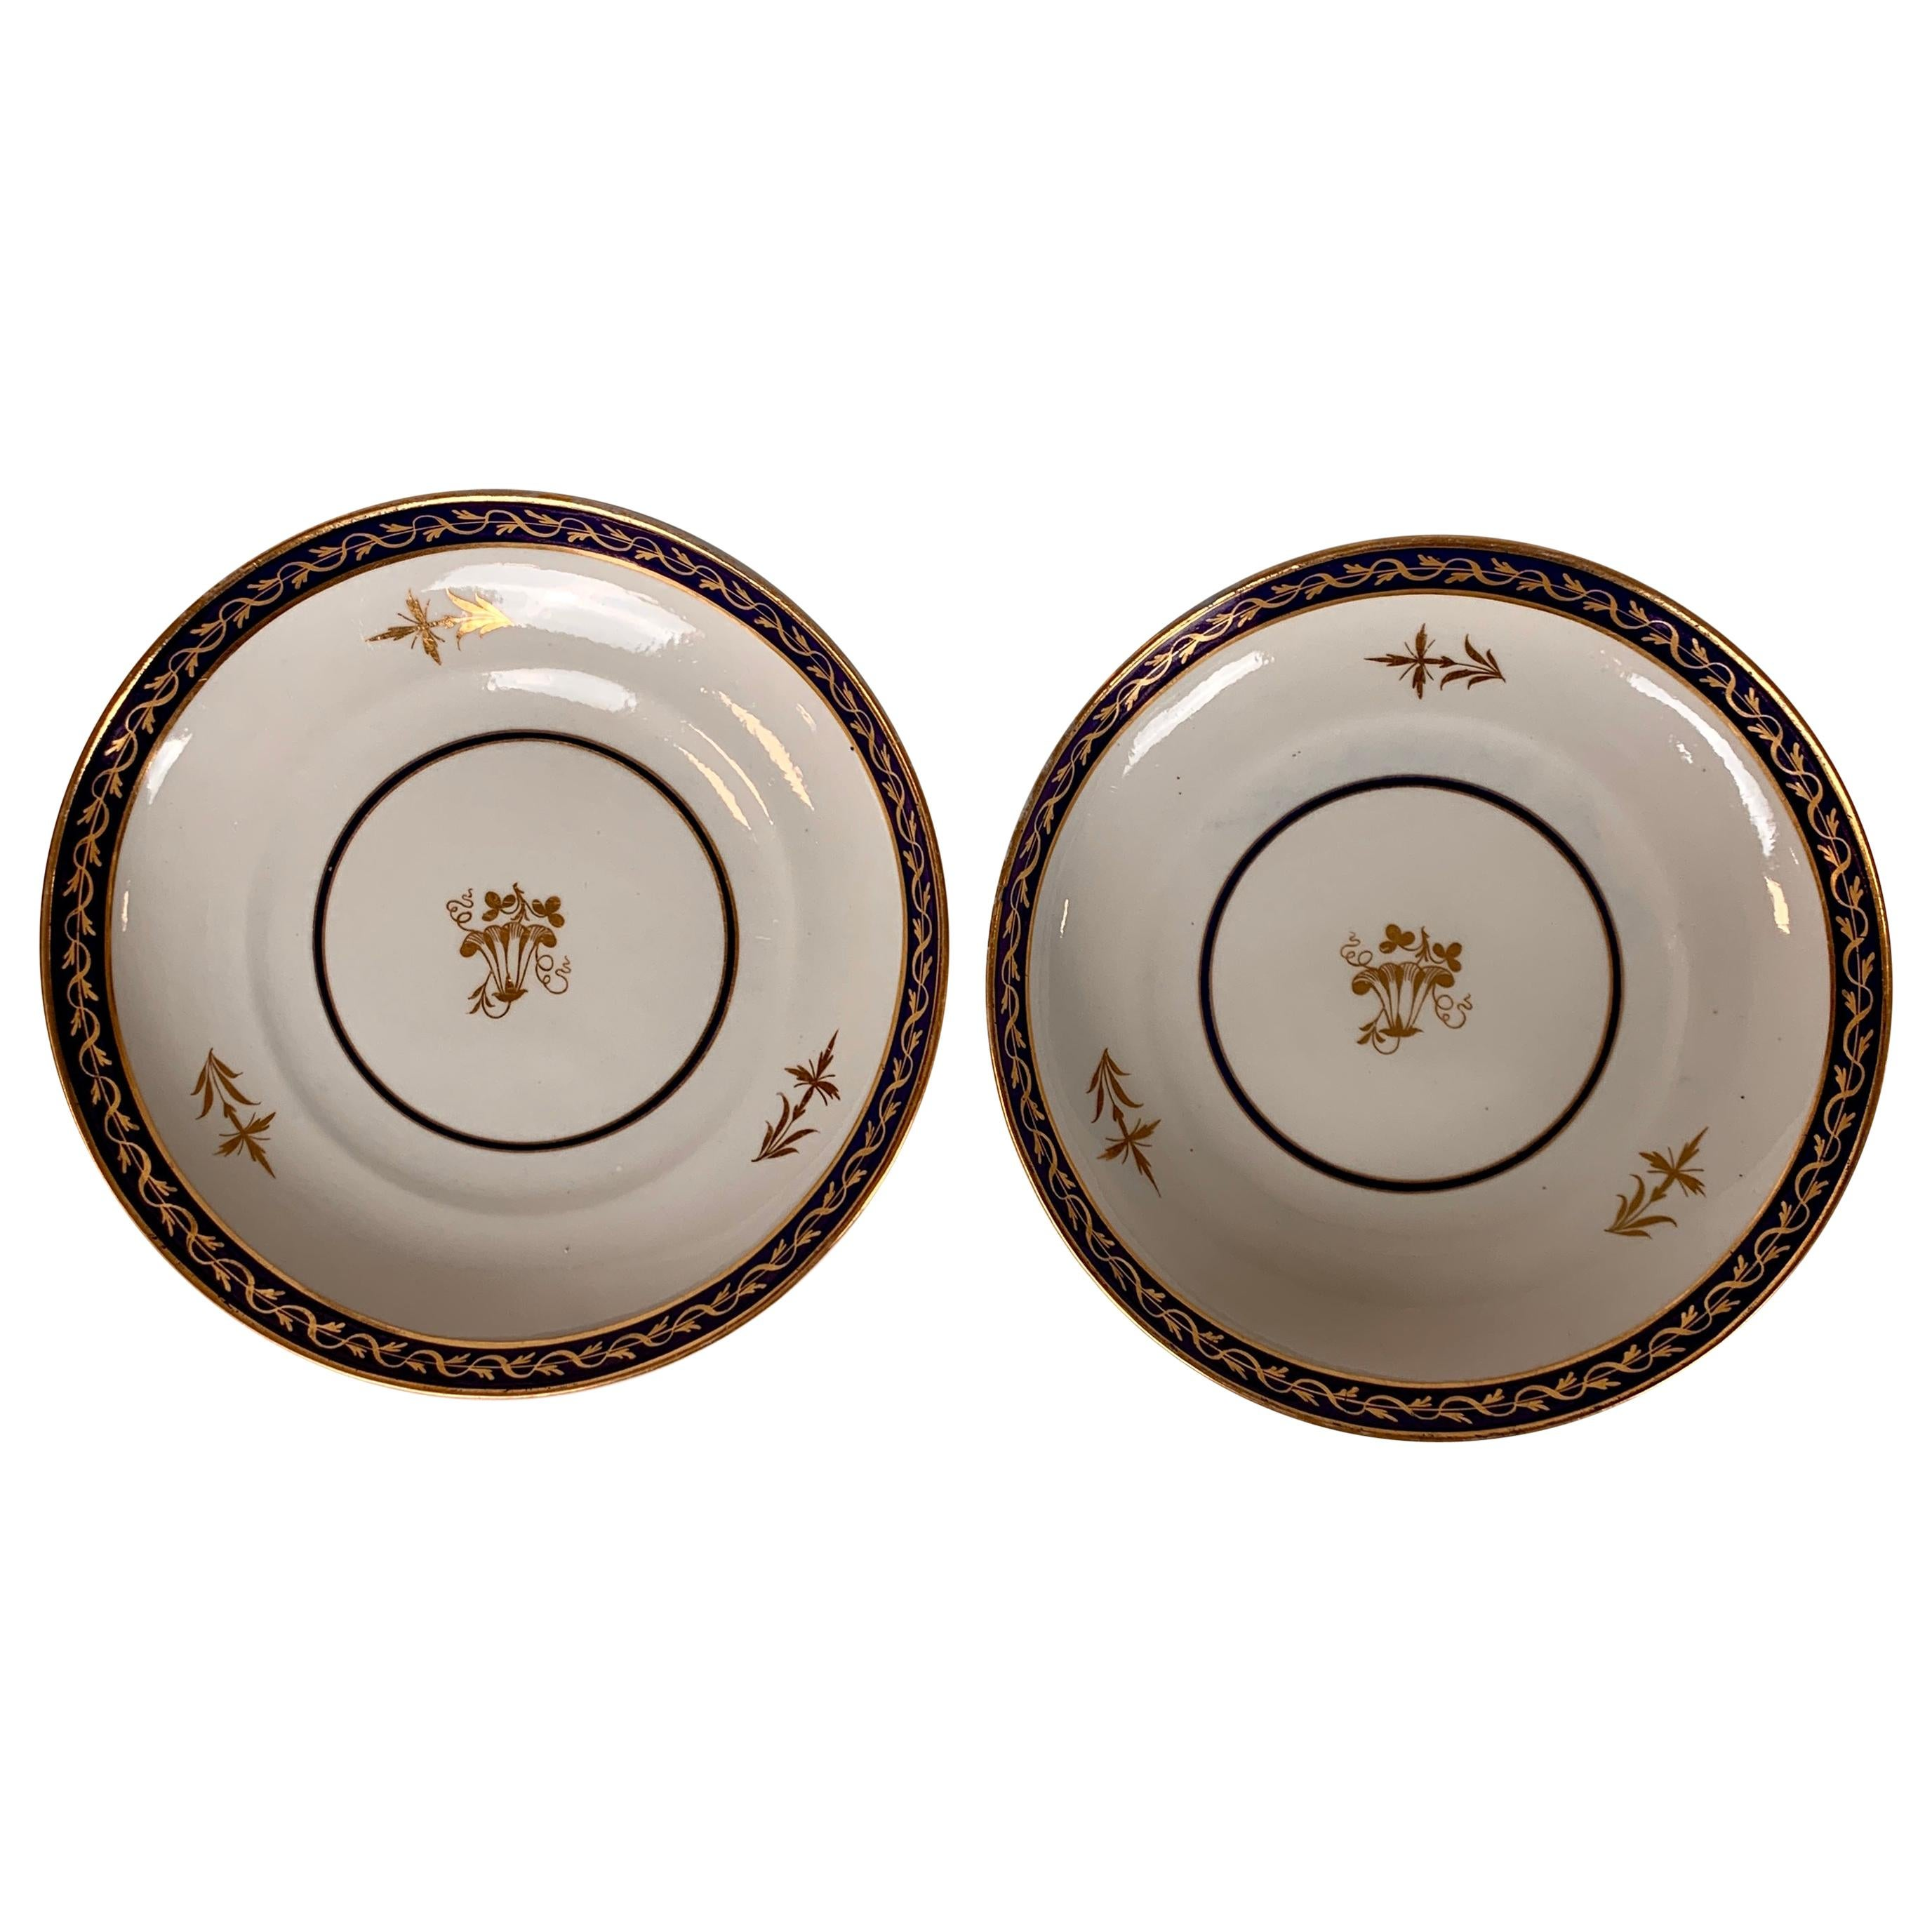 The Collection of Mario Buatta Pair of Regency Period Dishes Cobalt Blue Borders